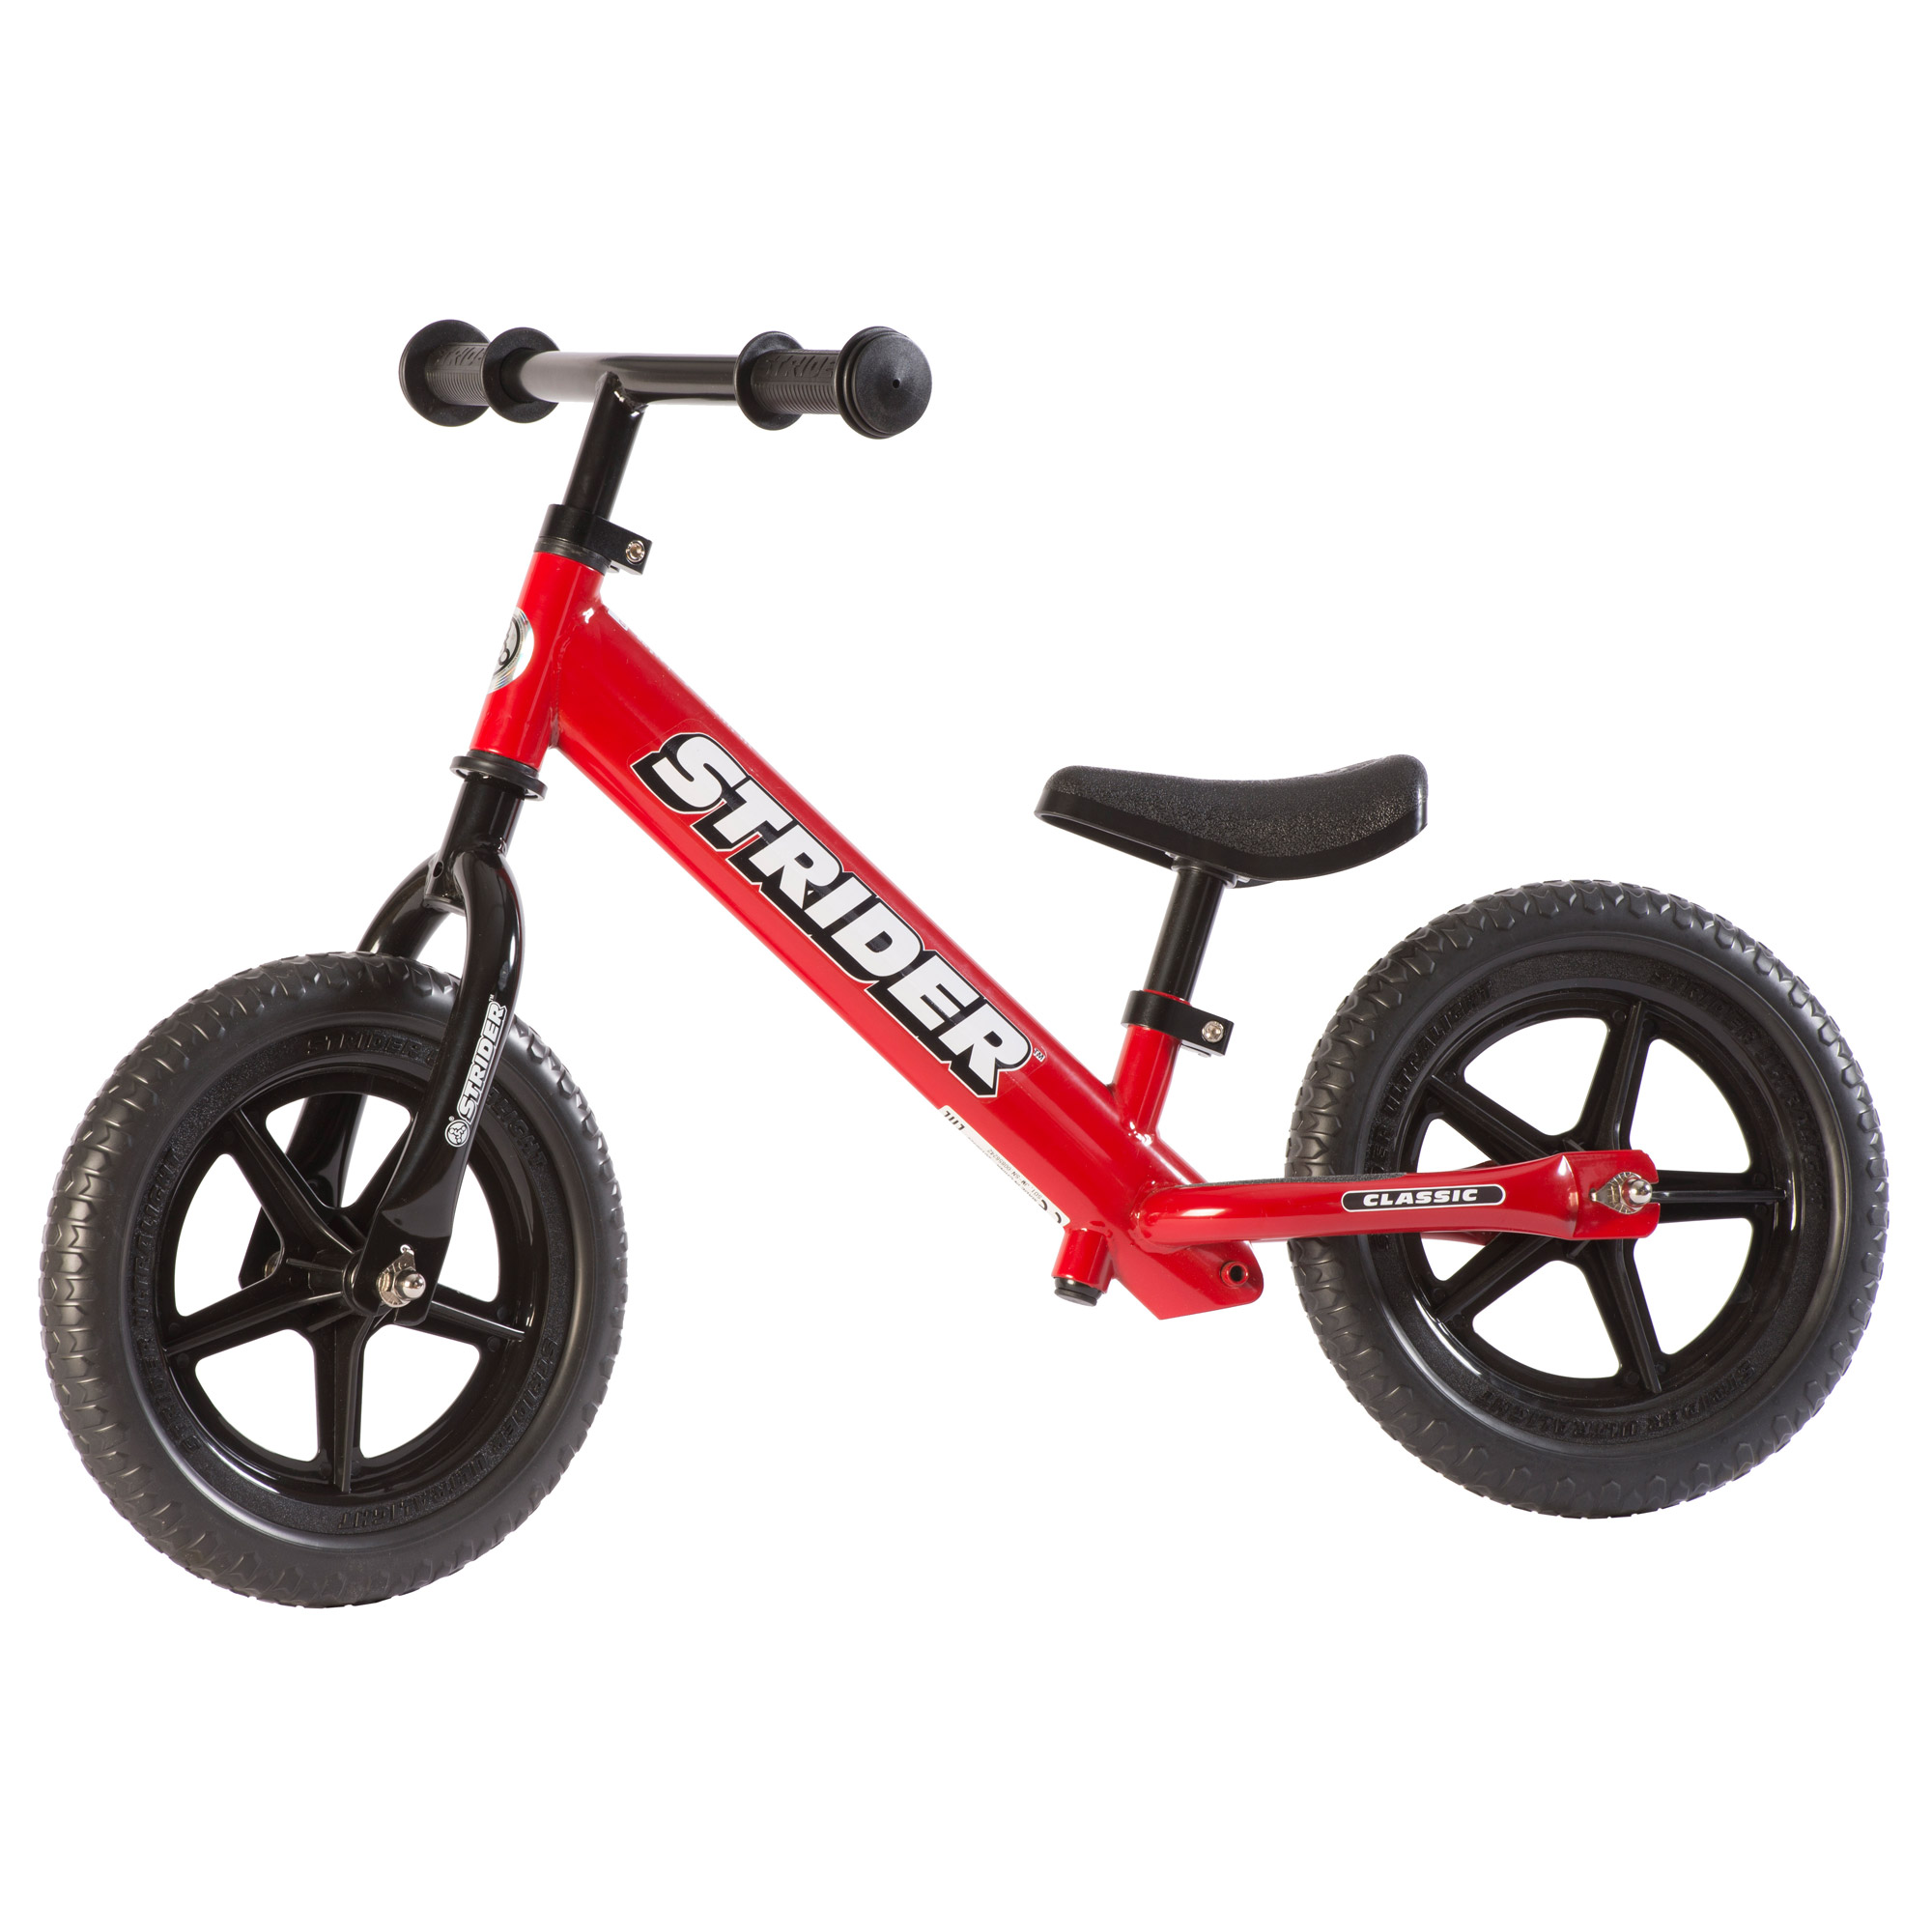 STRIDER 12 Classic Balance Bike, Red